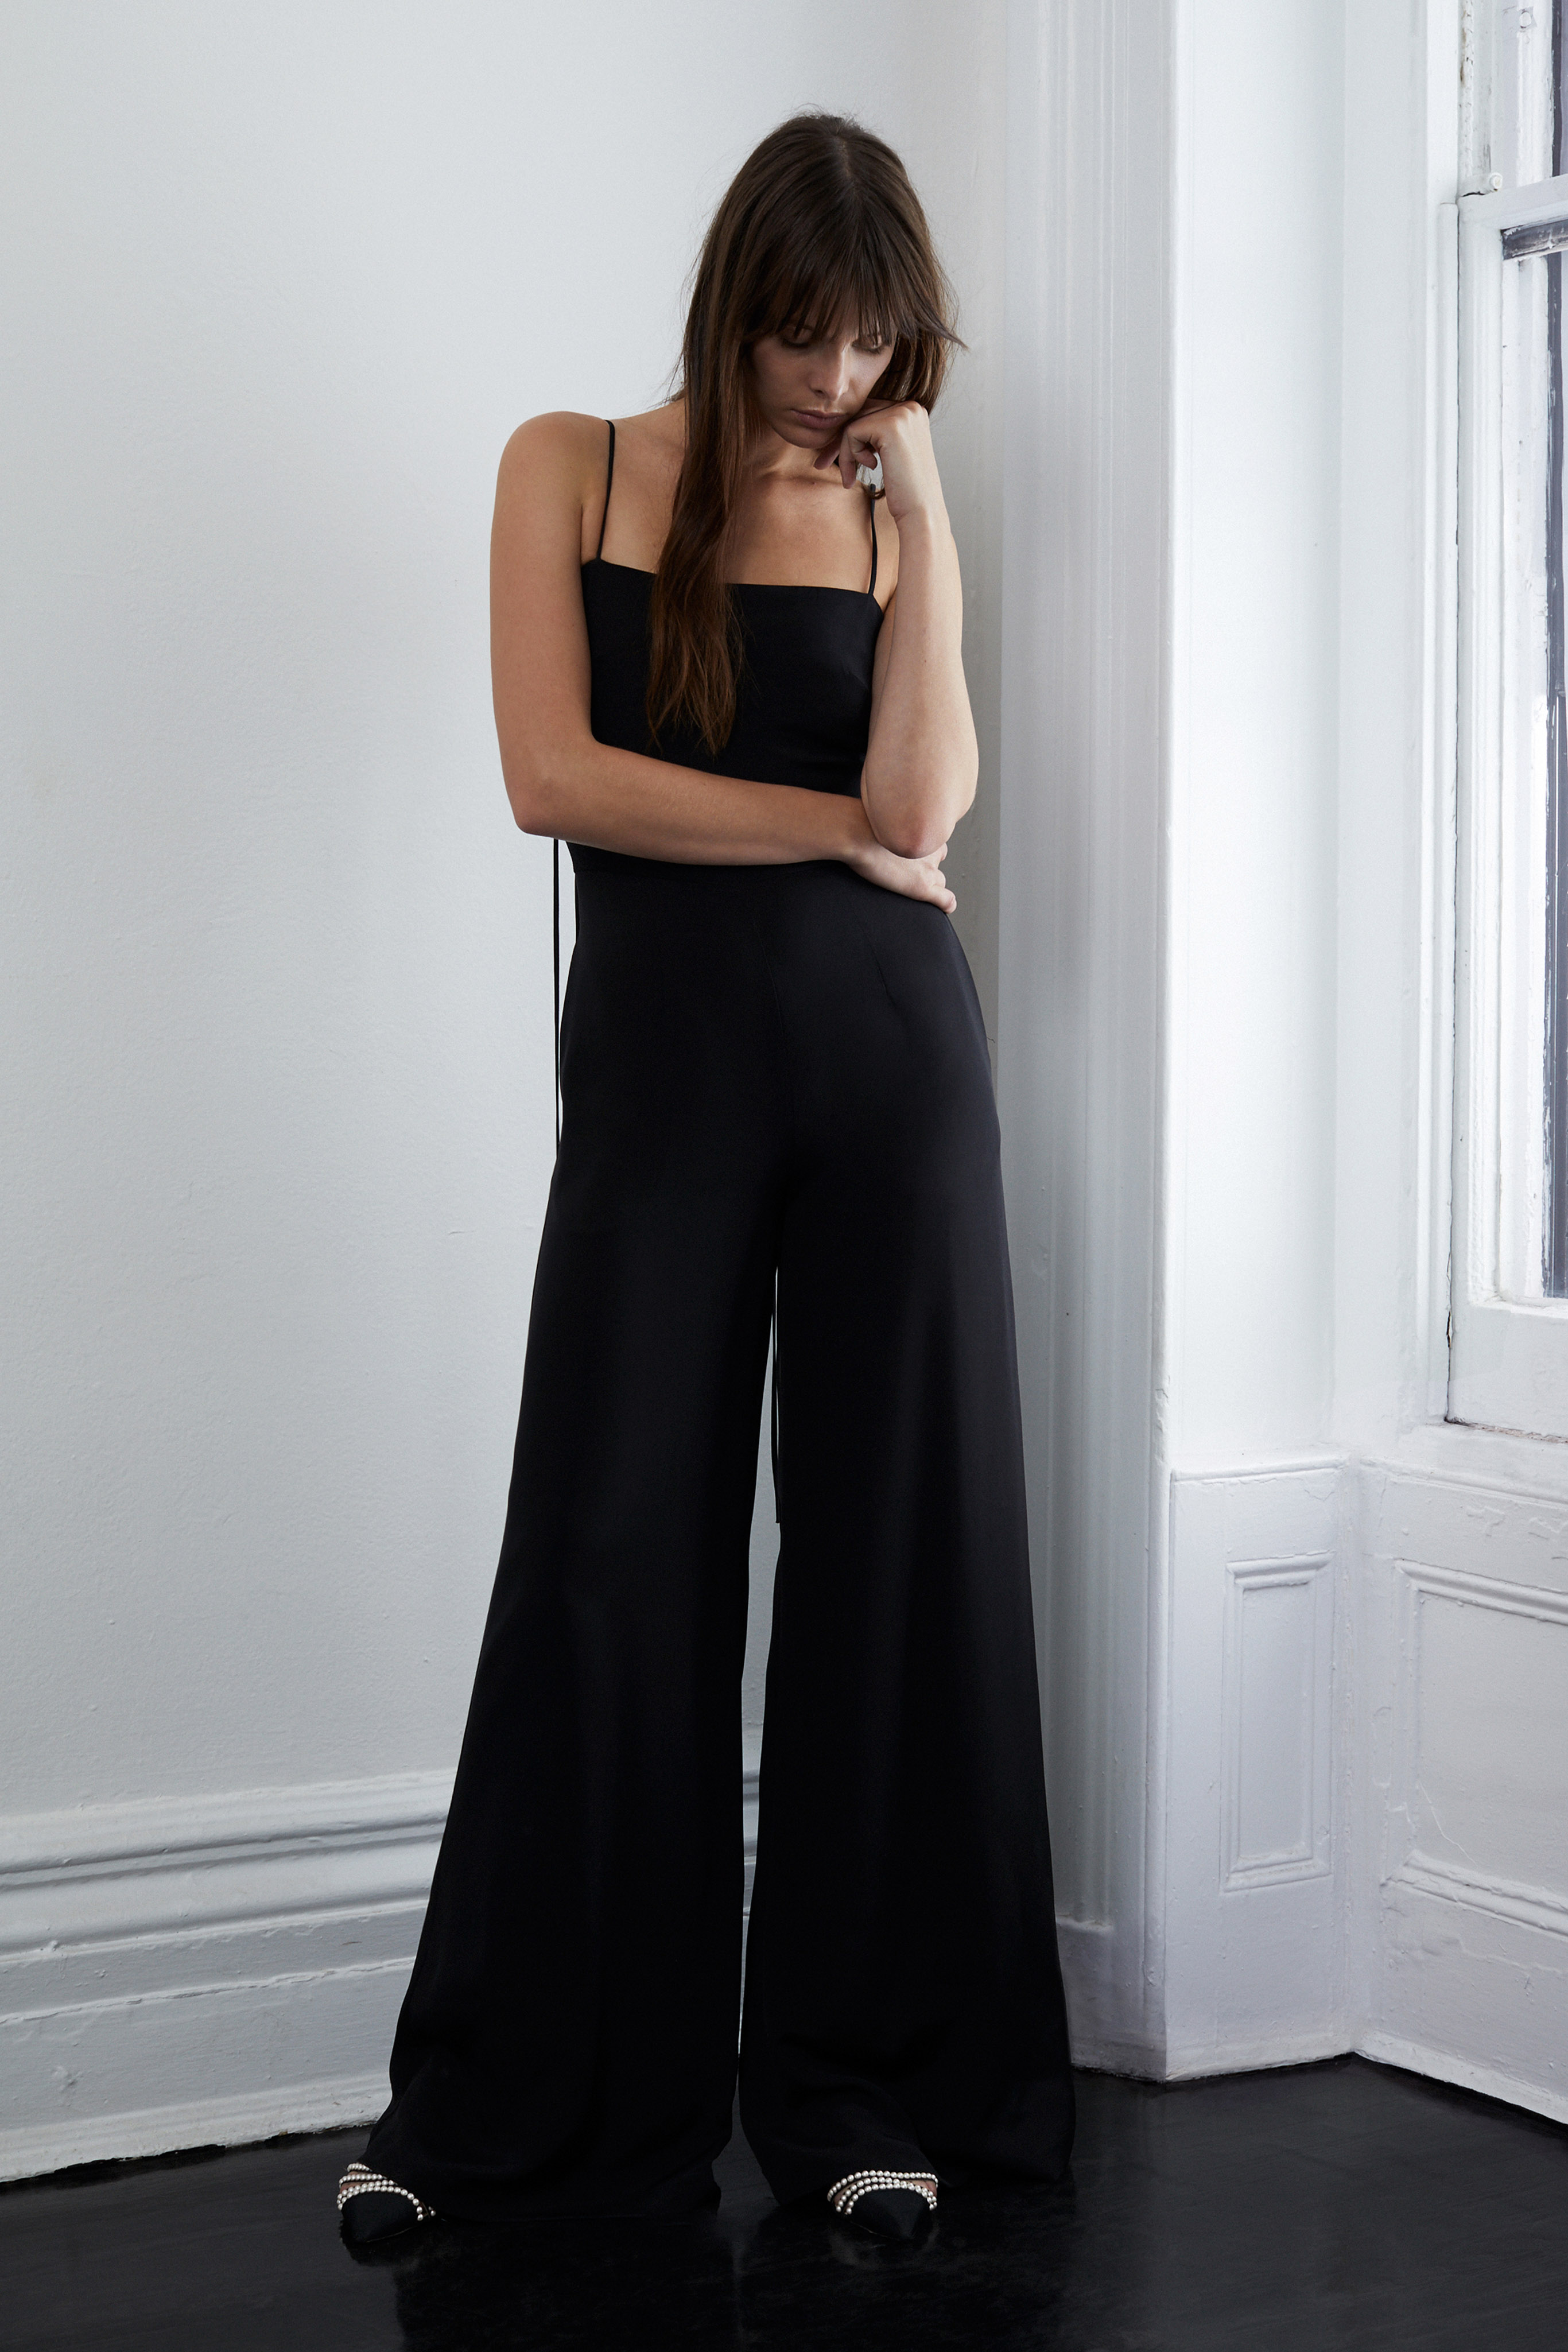 lein fall 2018 wedding dress black spaghetti strap jumpsuit wide leg